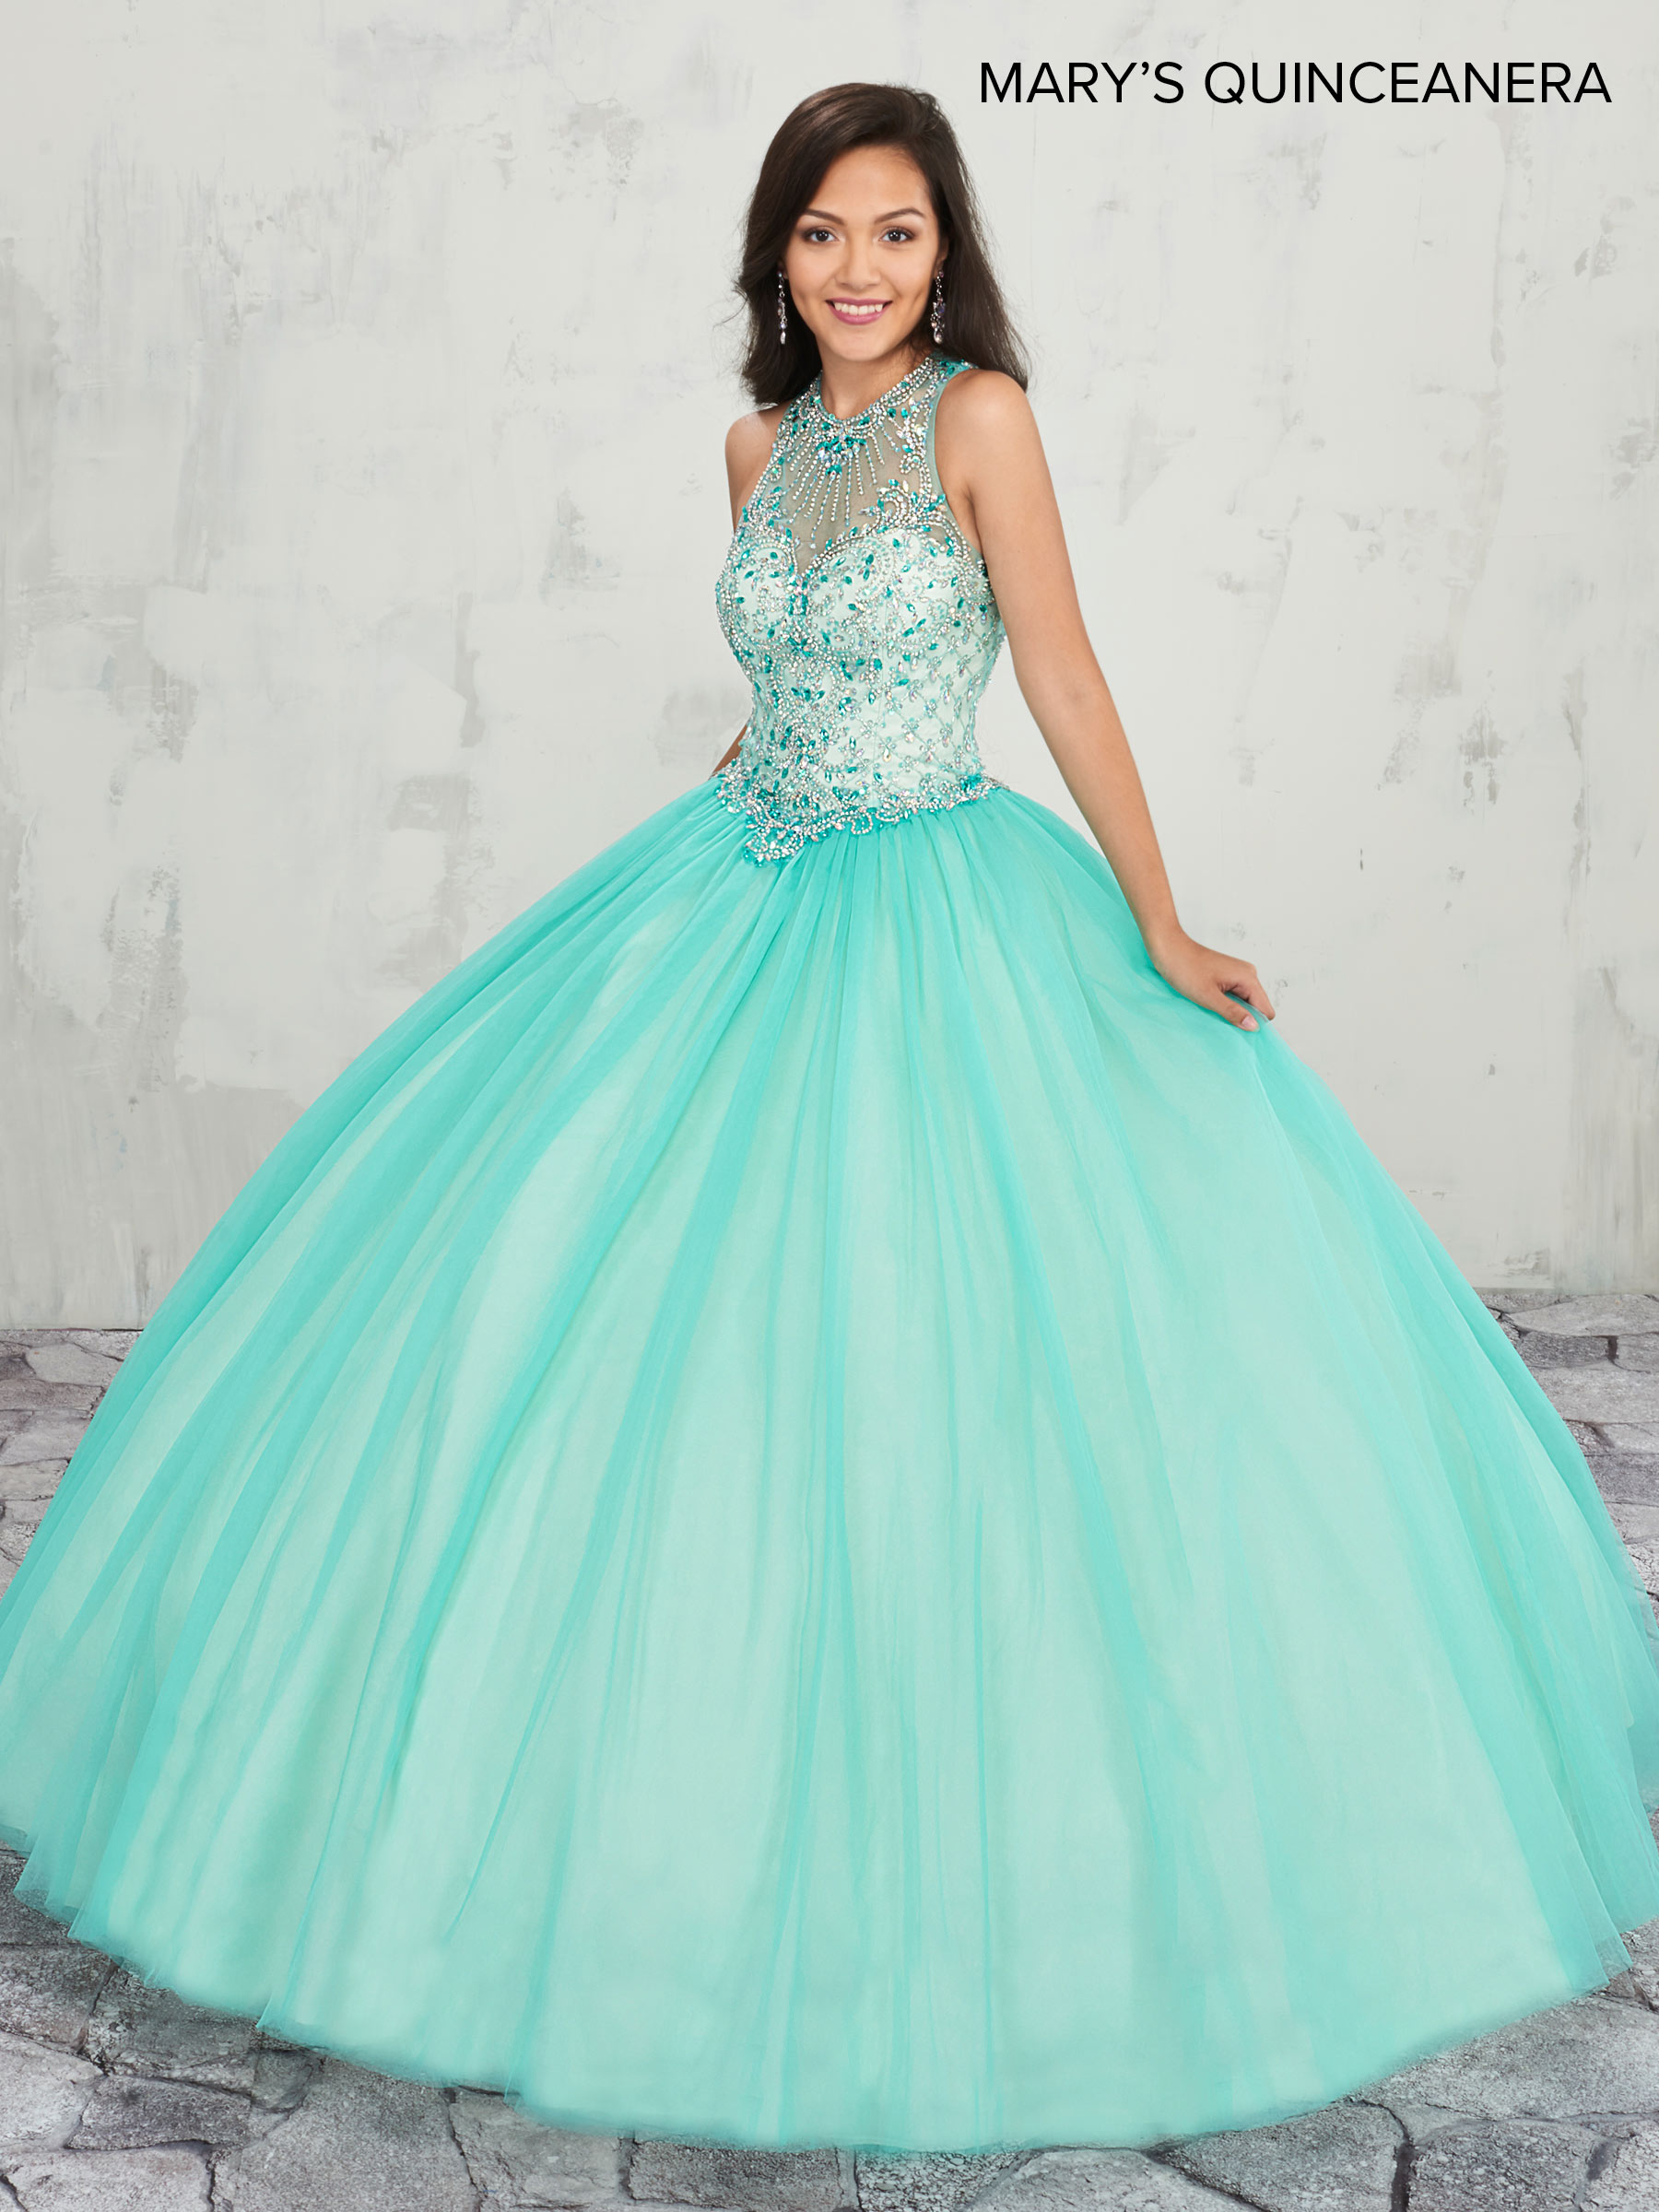 Marys Quinceanera Dresses | Style - MQ1007 in Bermuda/Champagne or ...